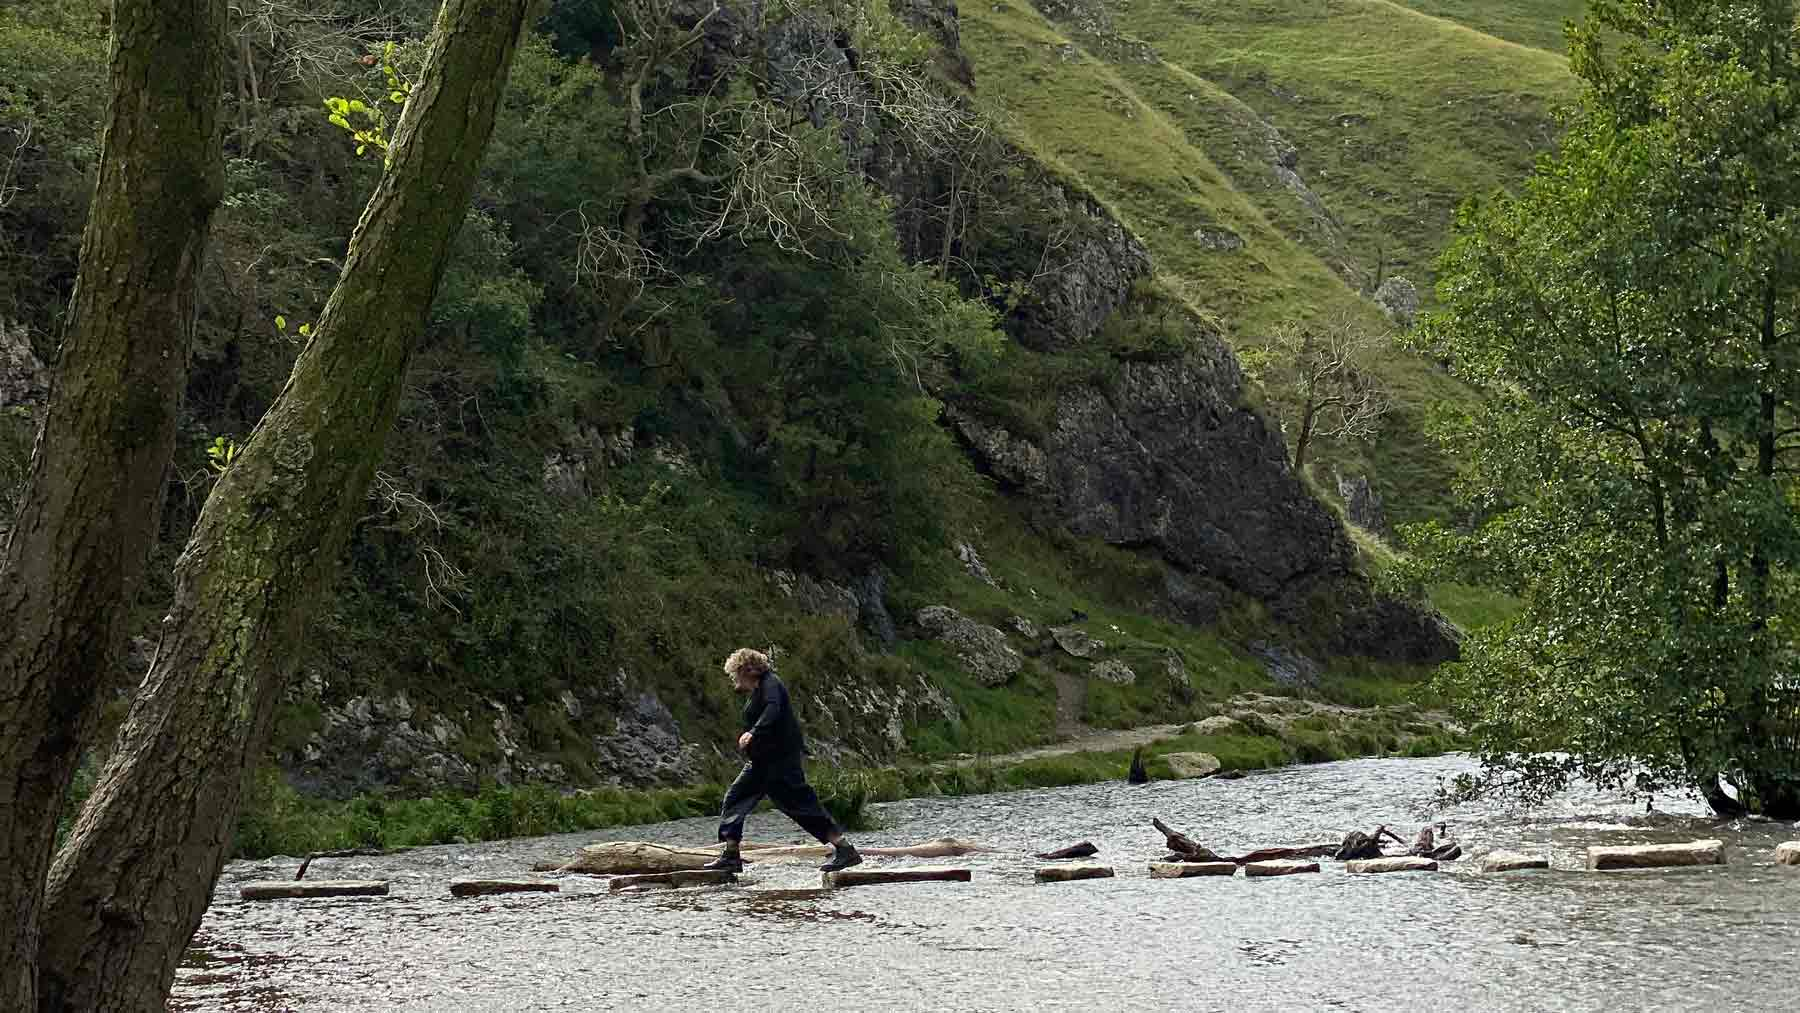 Clare wearing Asmuss jumping across the Dovedale Stepping Stones in the Peak District